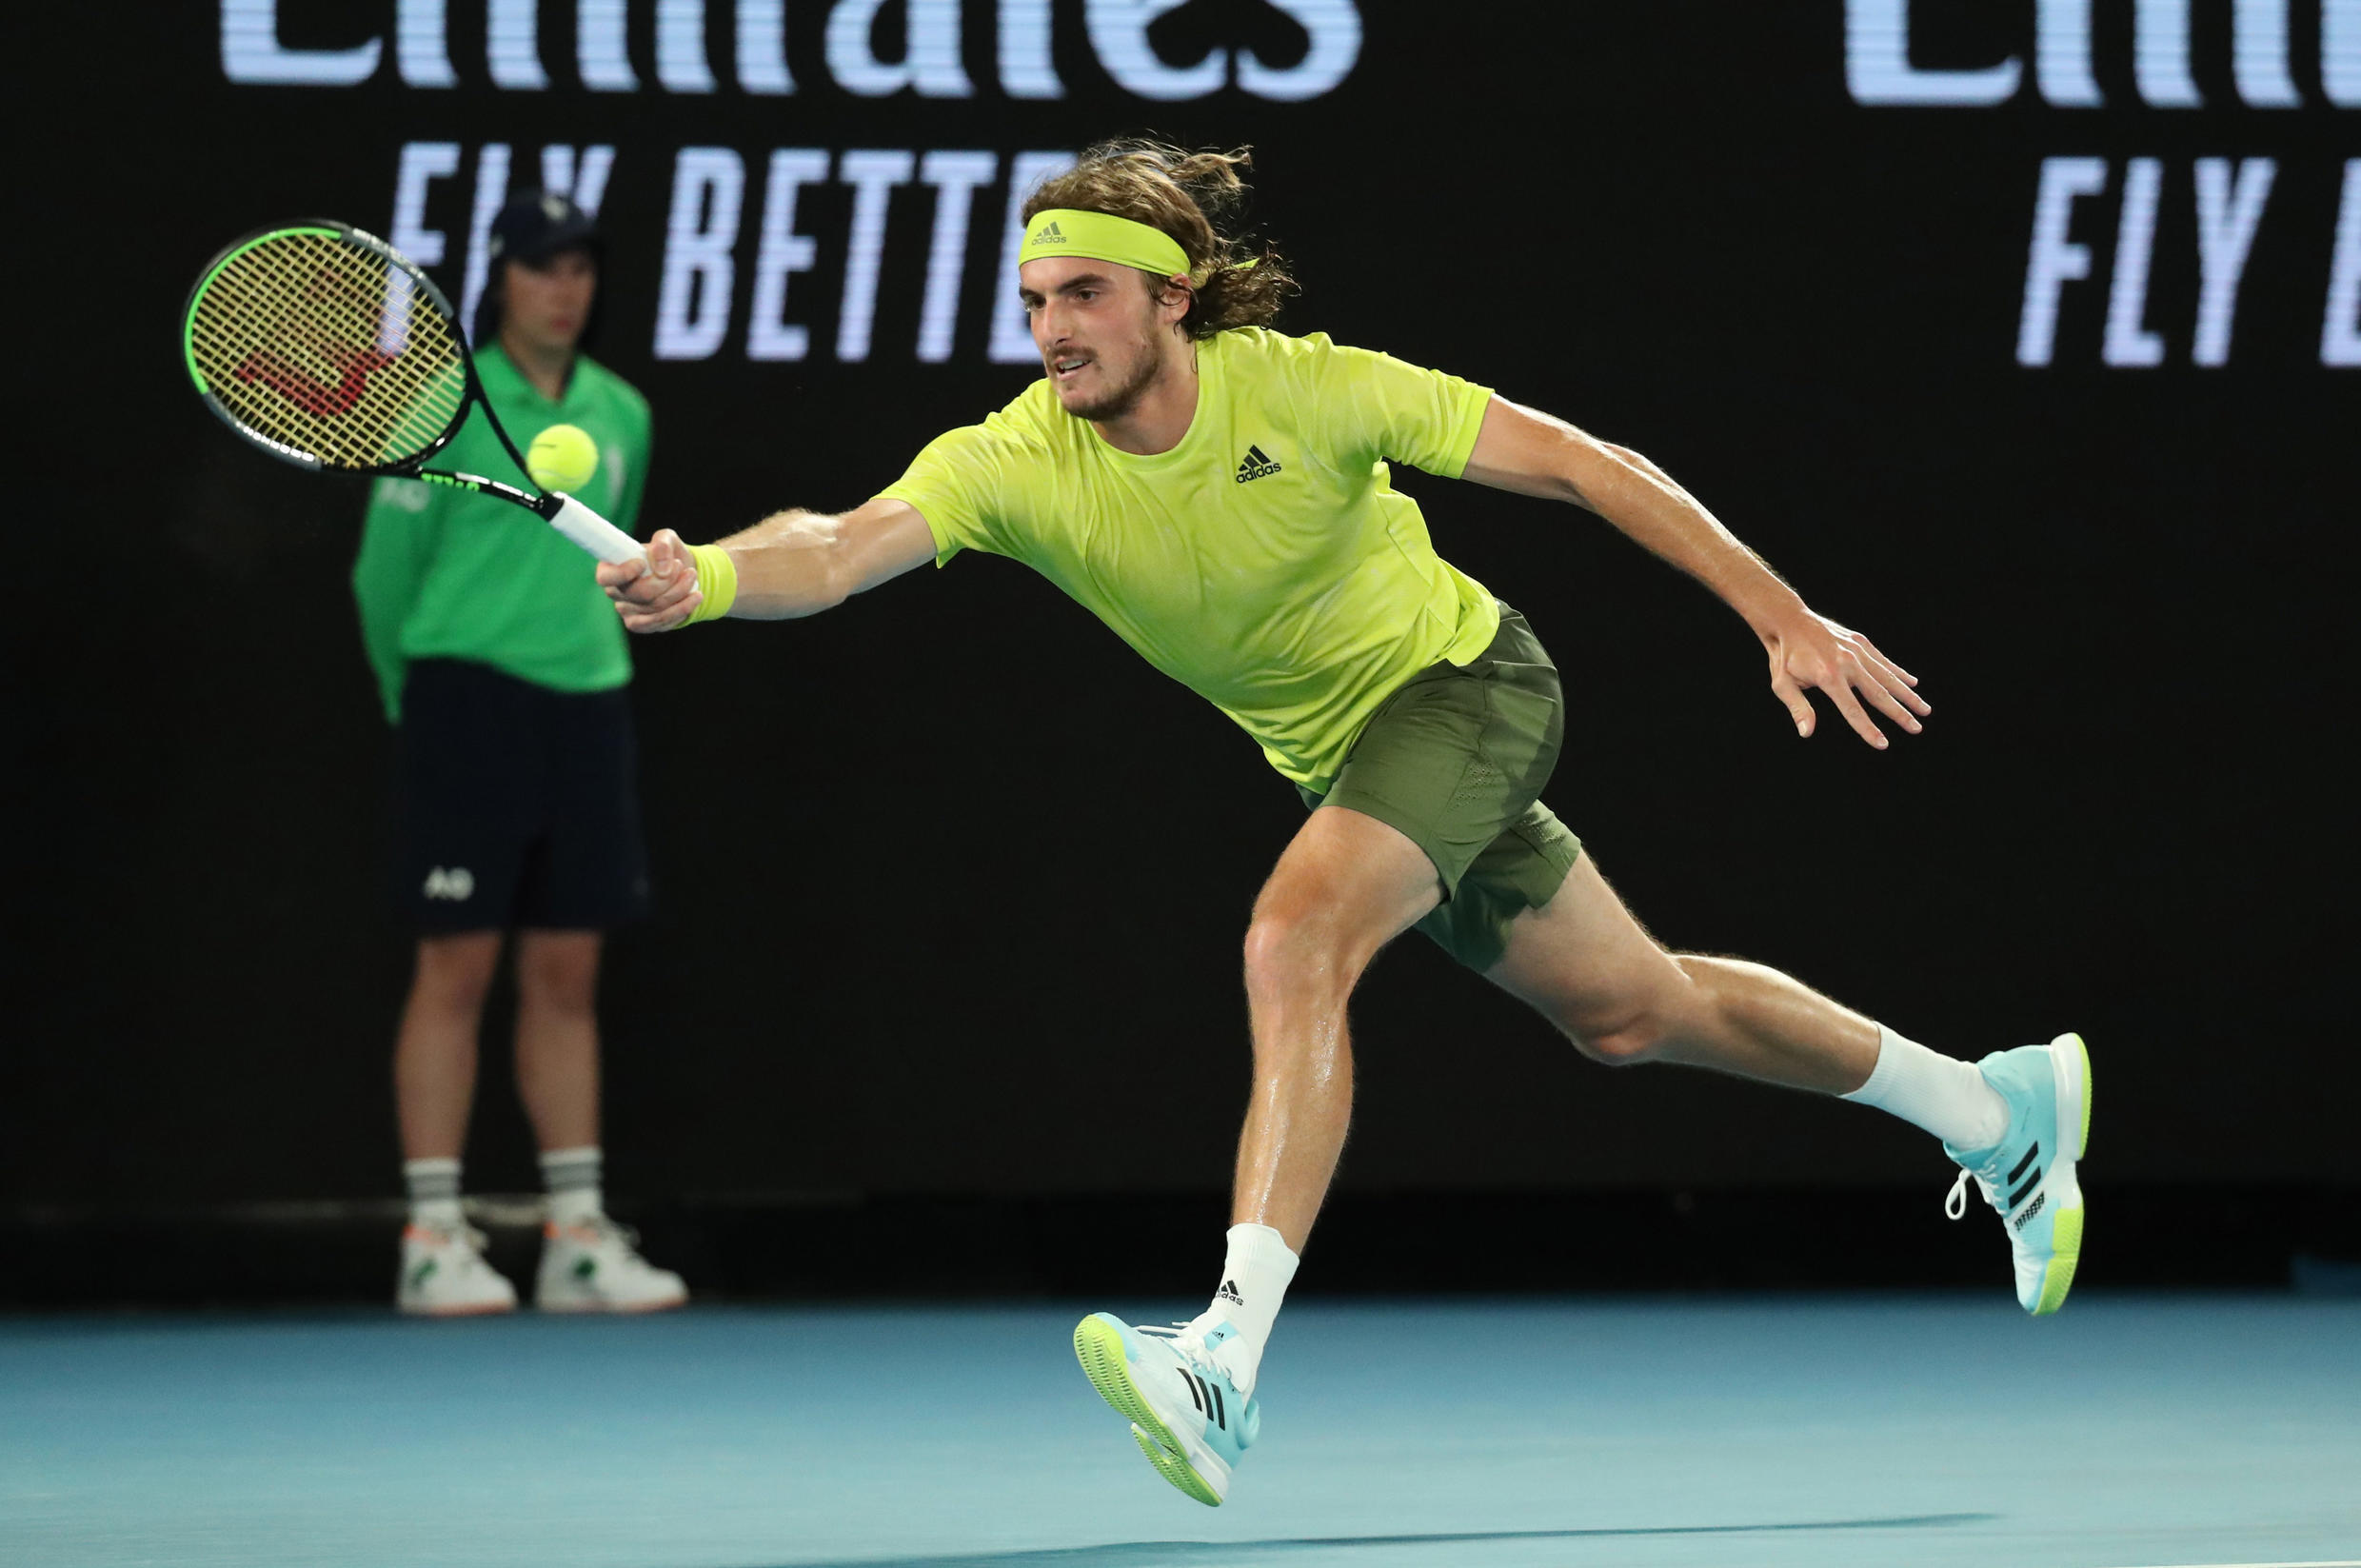 Stefanos Tsitsipas dropped only four games during his first round match against the French veteran Gilles Simon.